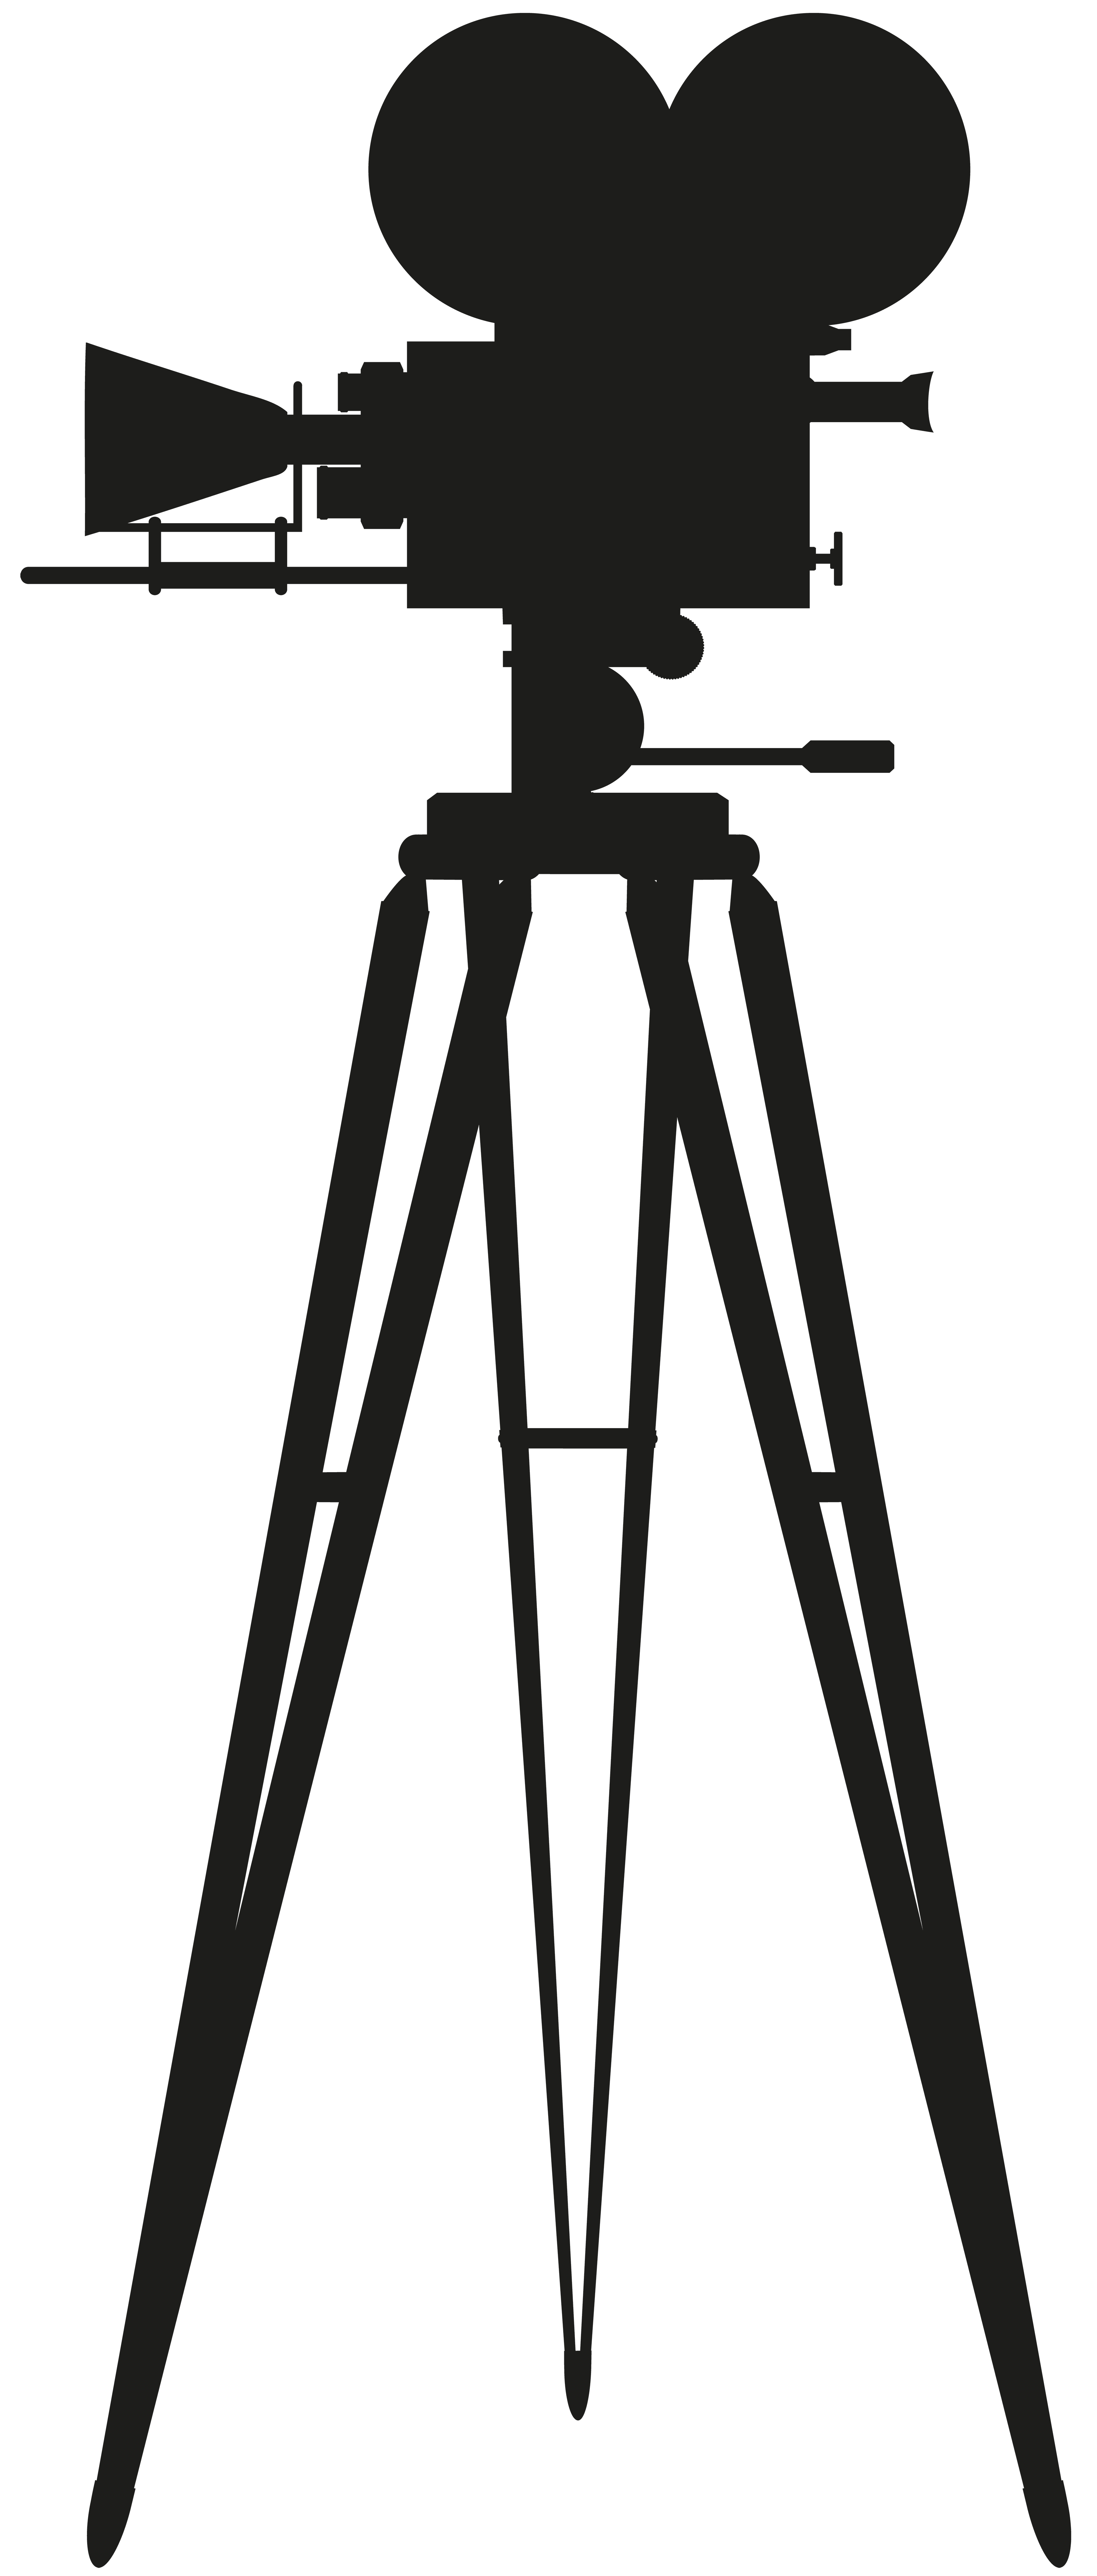 3408x8000 Cinema Camera Silhouette Png Clip Art